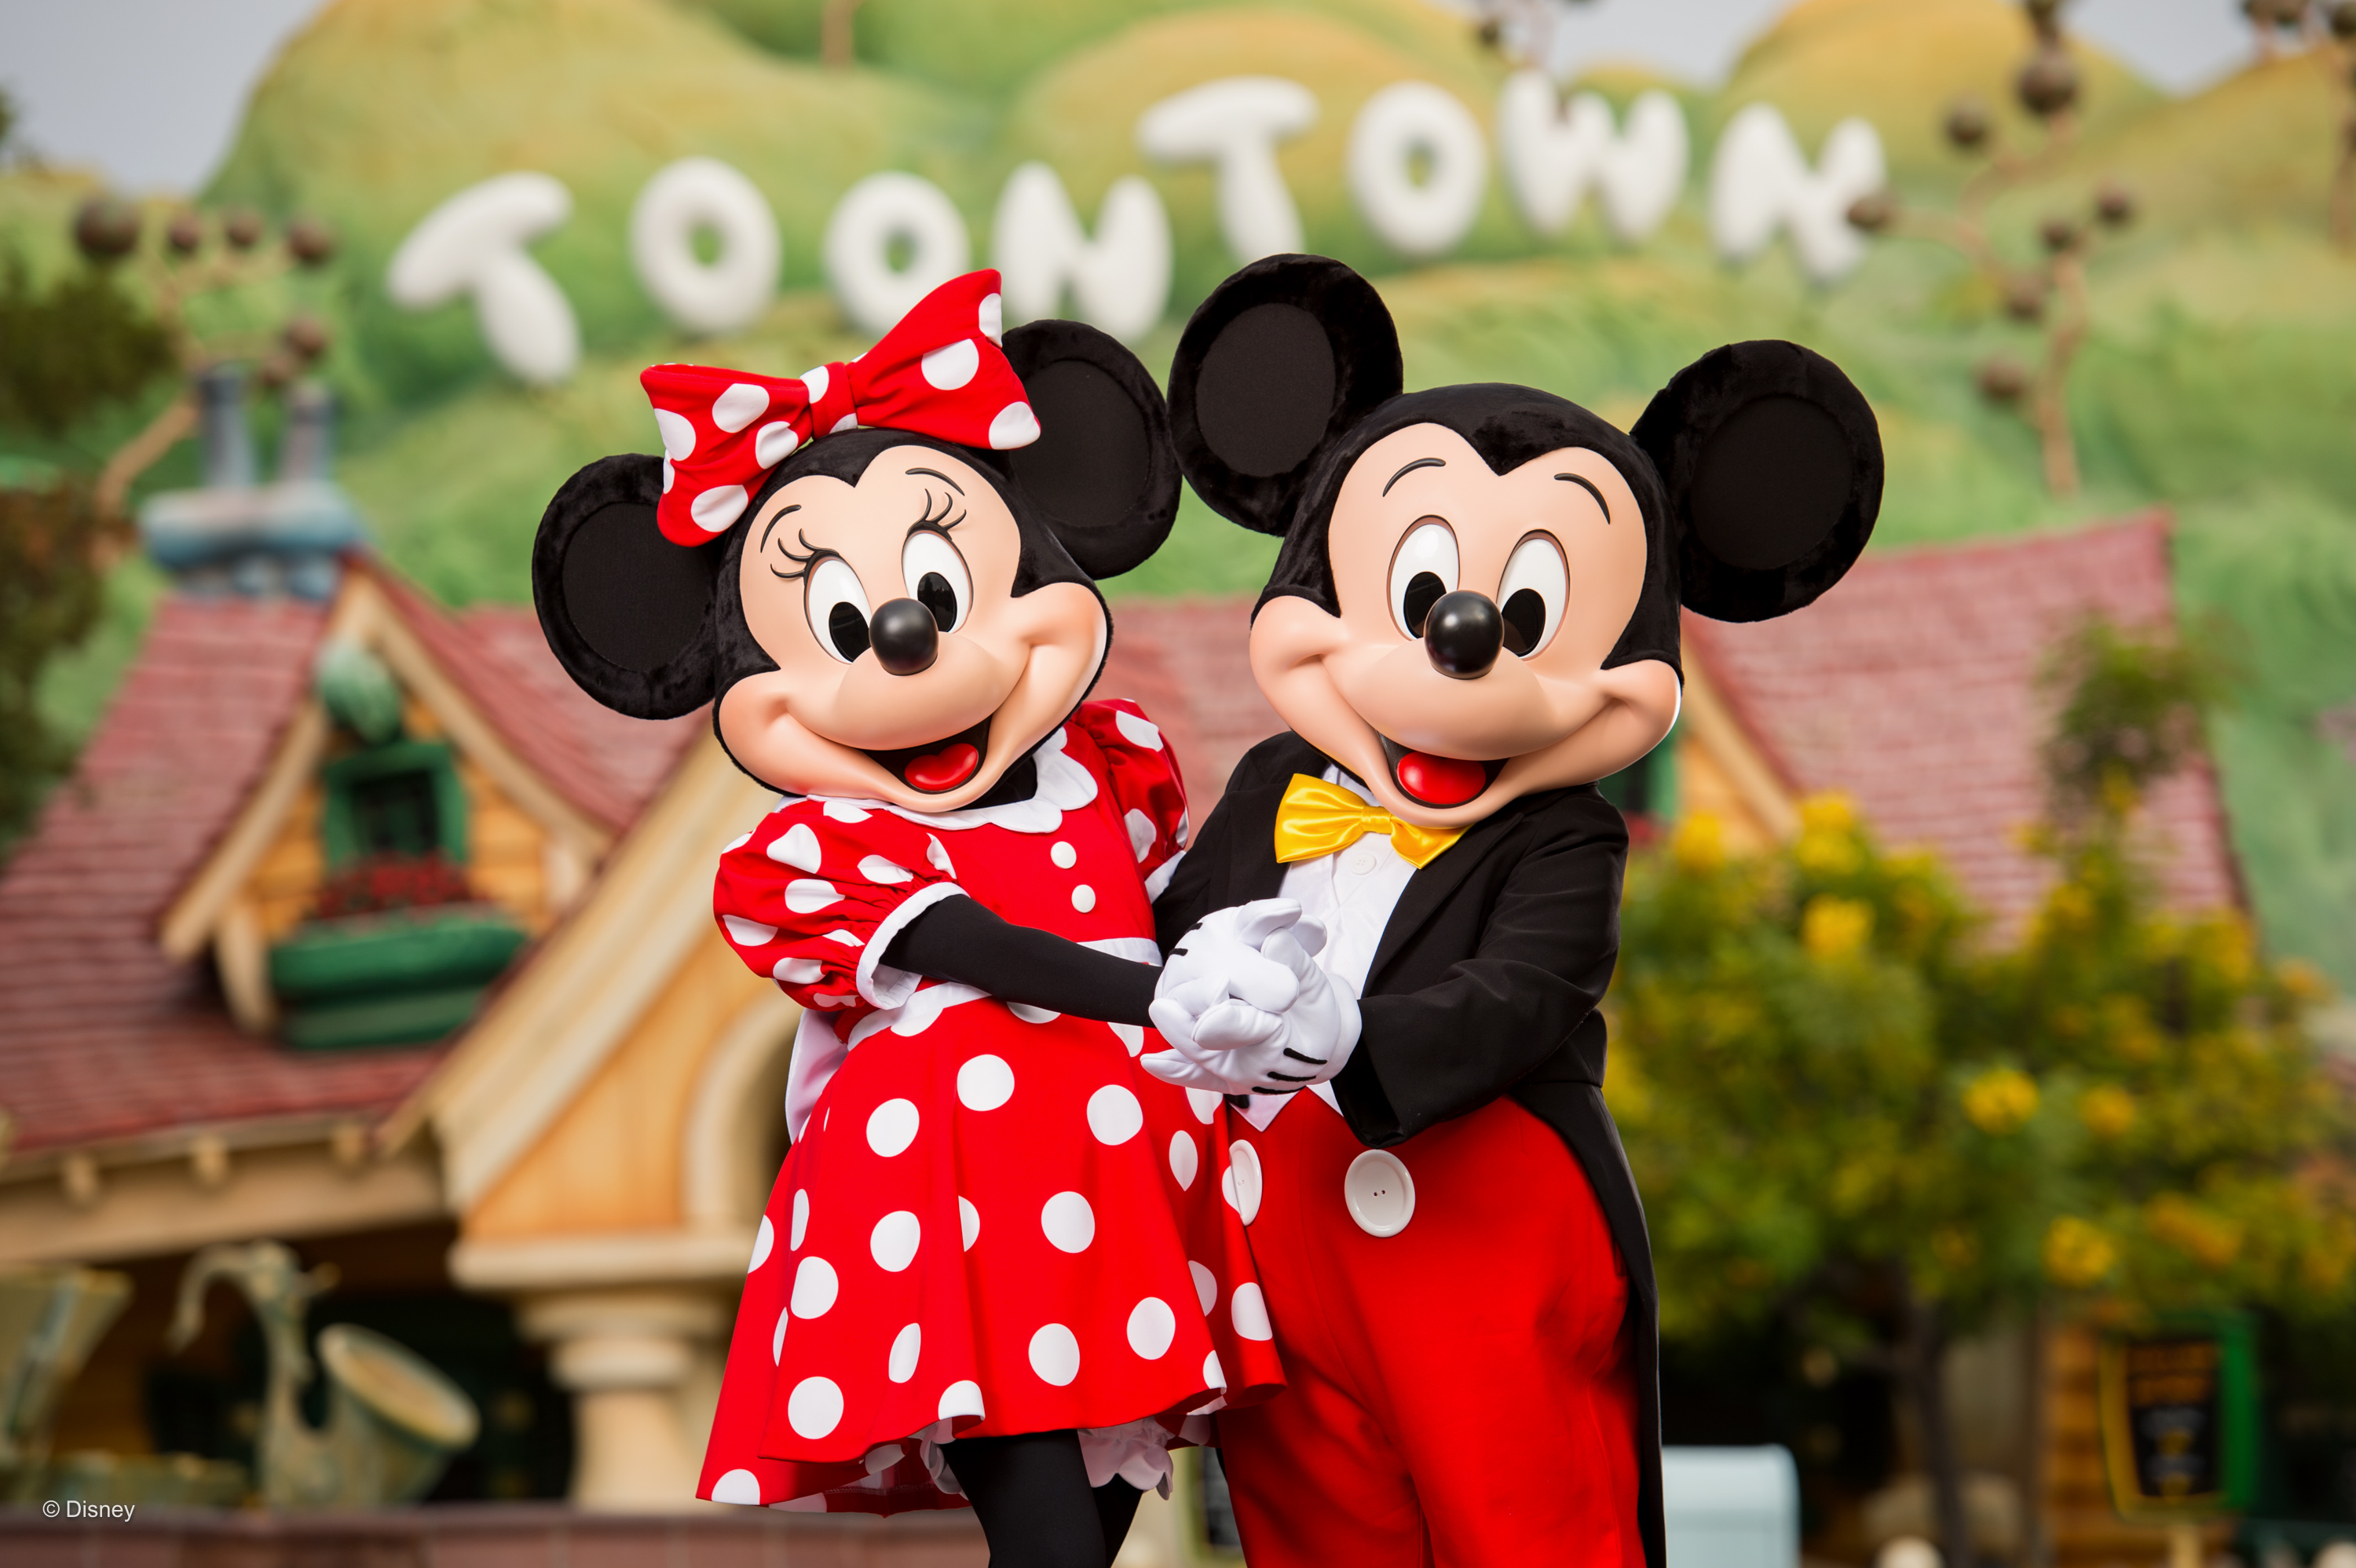 Mickey and Minnie Mouse at Disneyland California